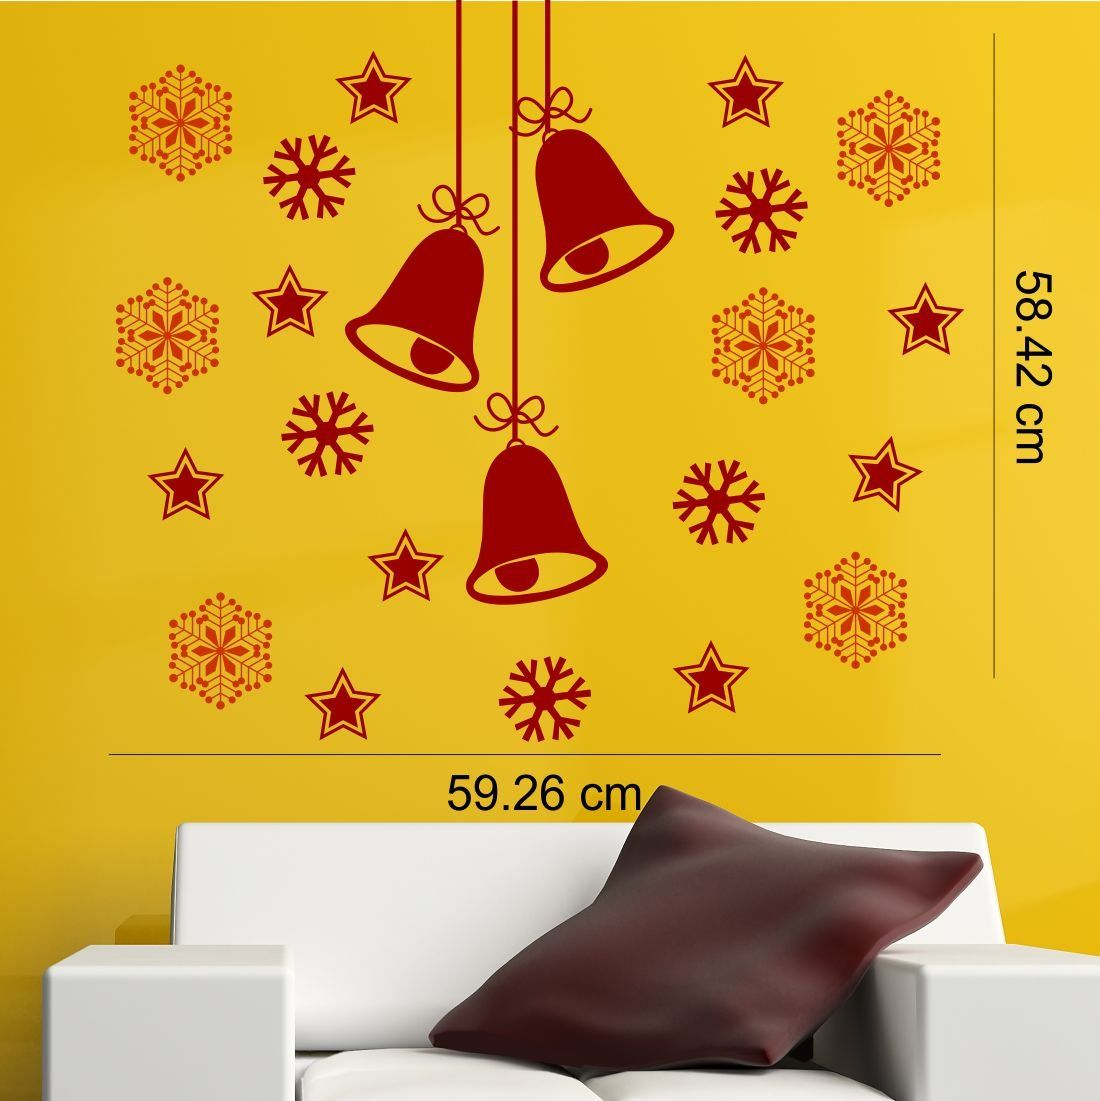 Snowflakes And Stars Around Christmas Bells